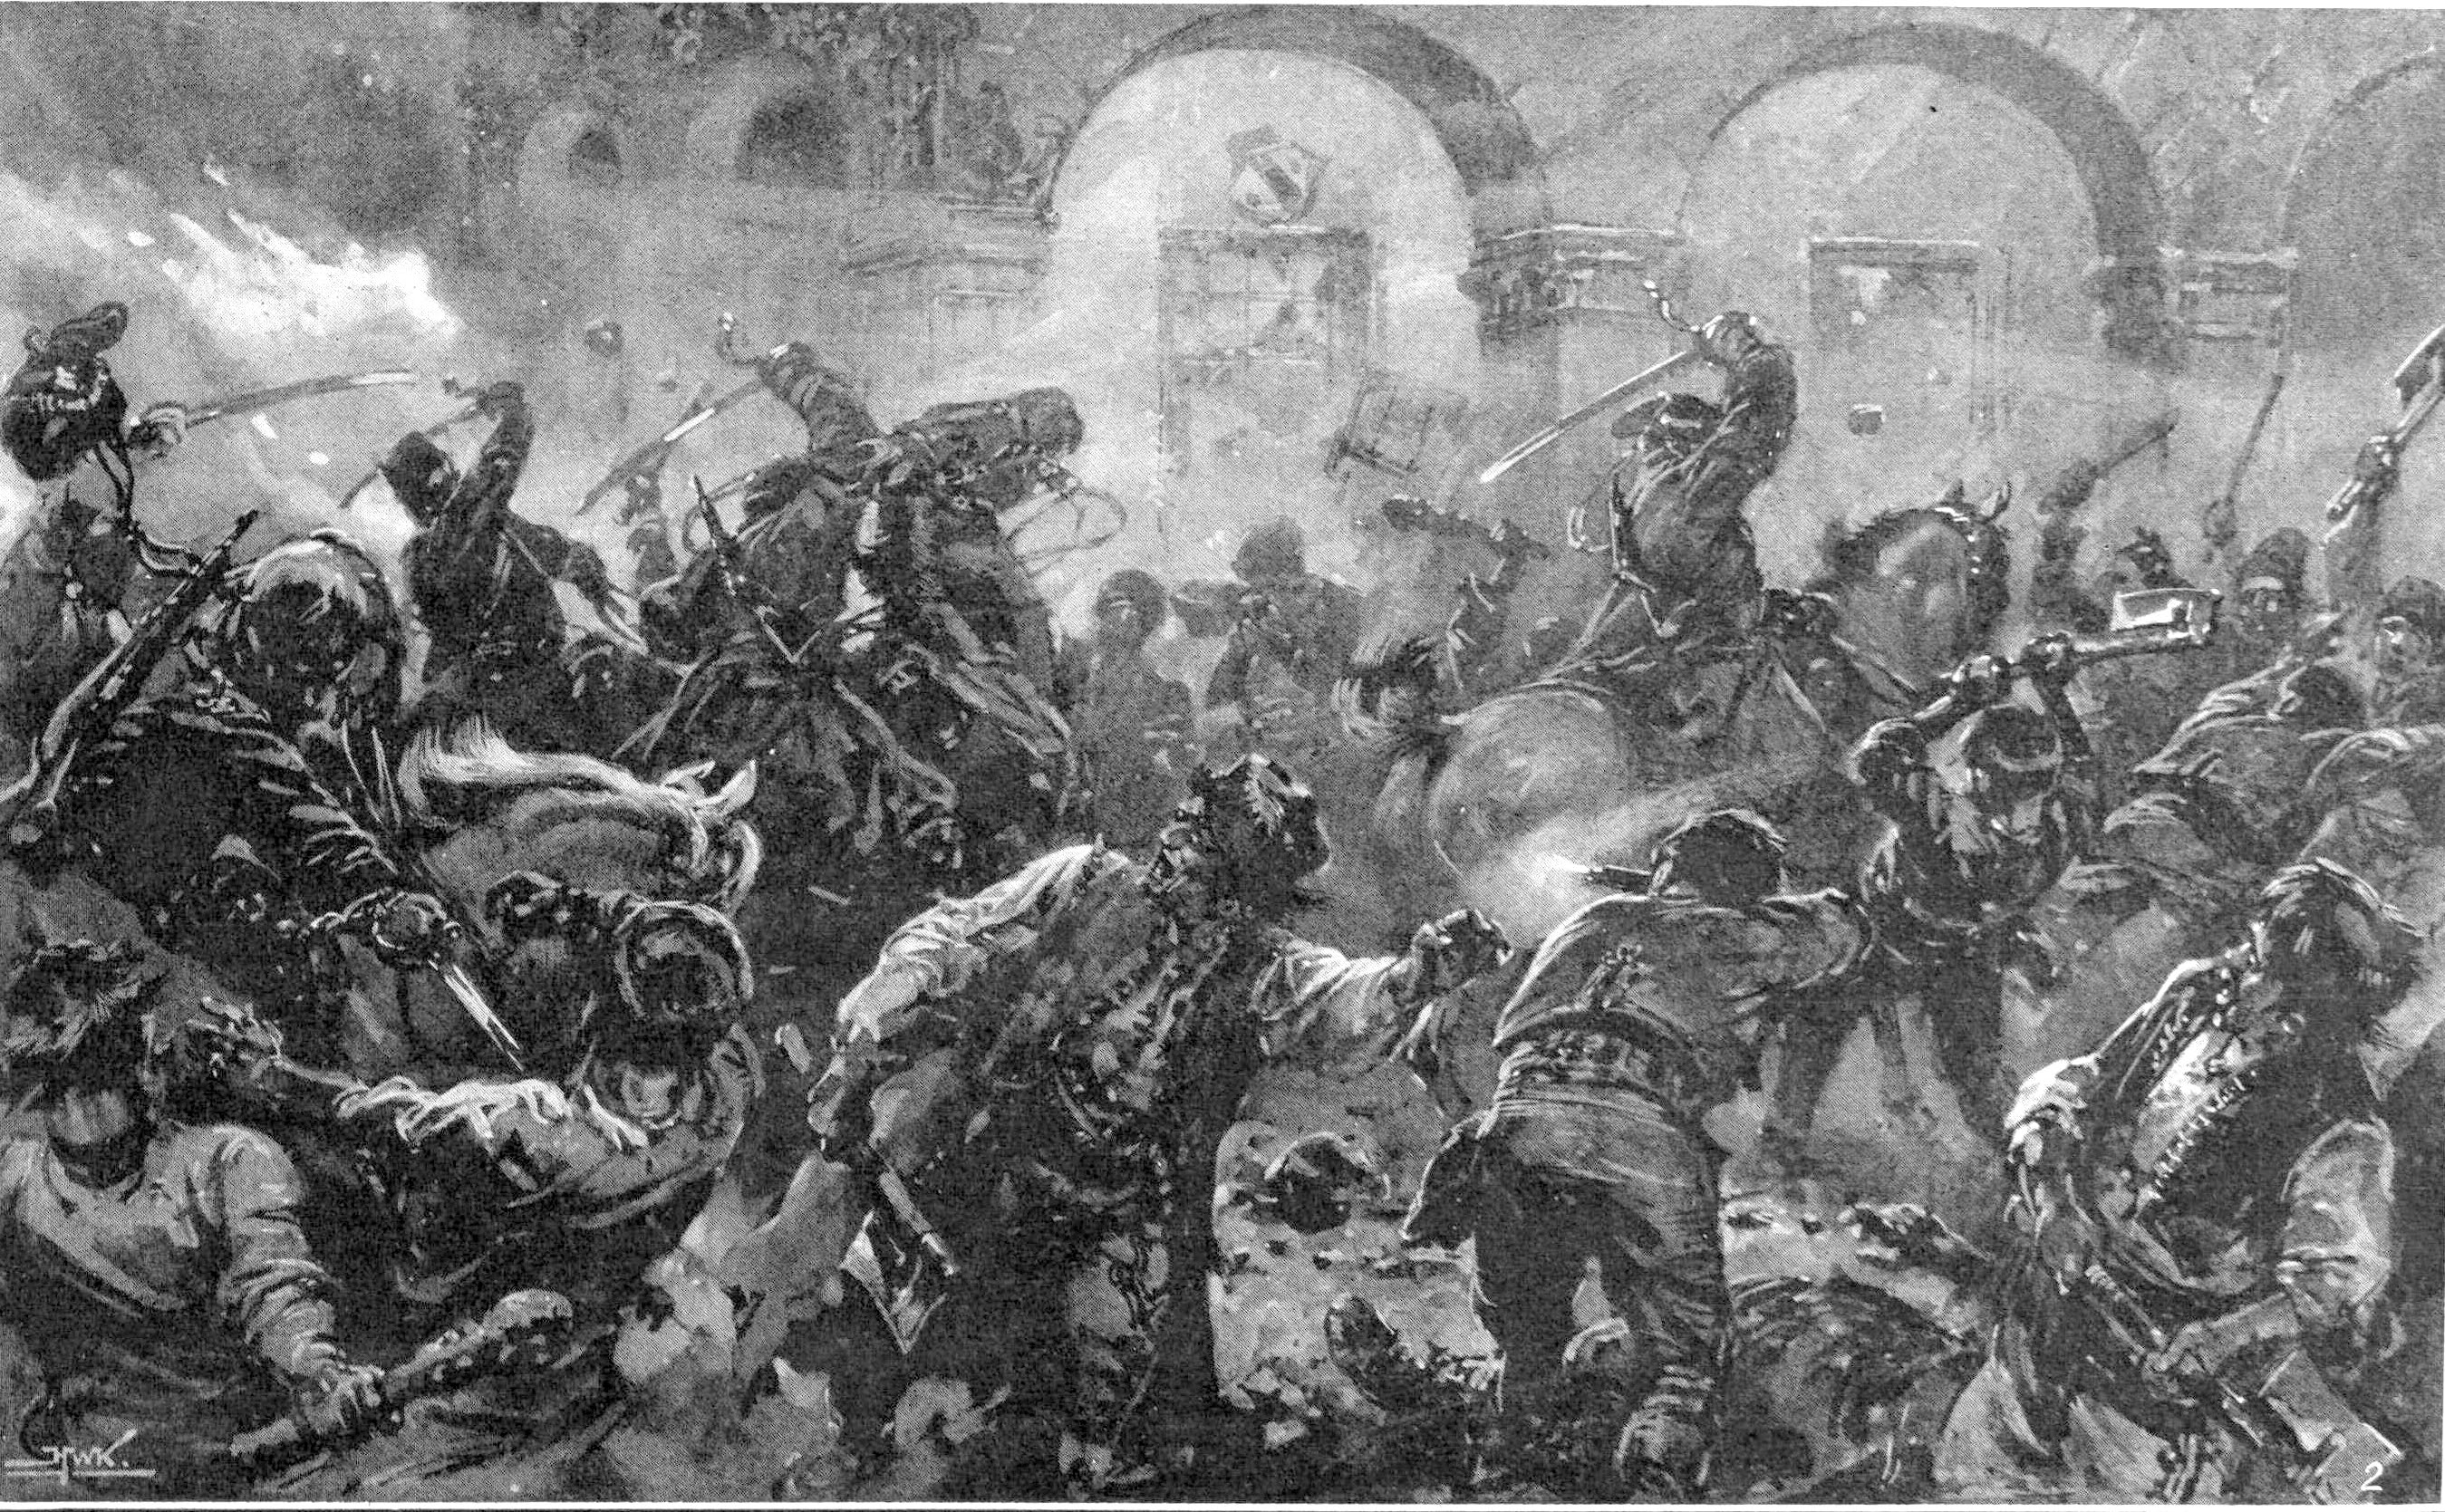 http://upload.wikimedia.org/wikipedia/commons/1/1c/A_cavalry_patrol_sabring_the_rioters_in_the_streets_of_Comanesti.jpg